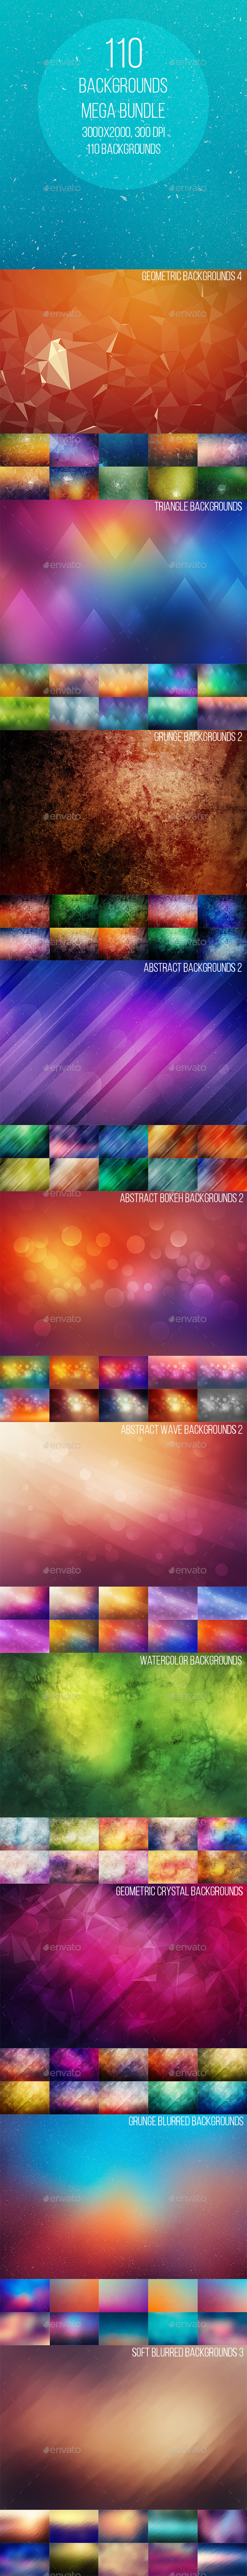 GraphicRiver 110 Backgrounds Mega Bundle 9272576